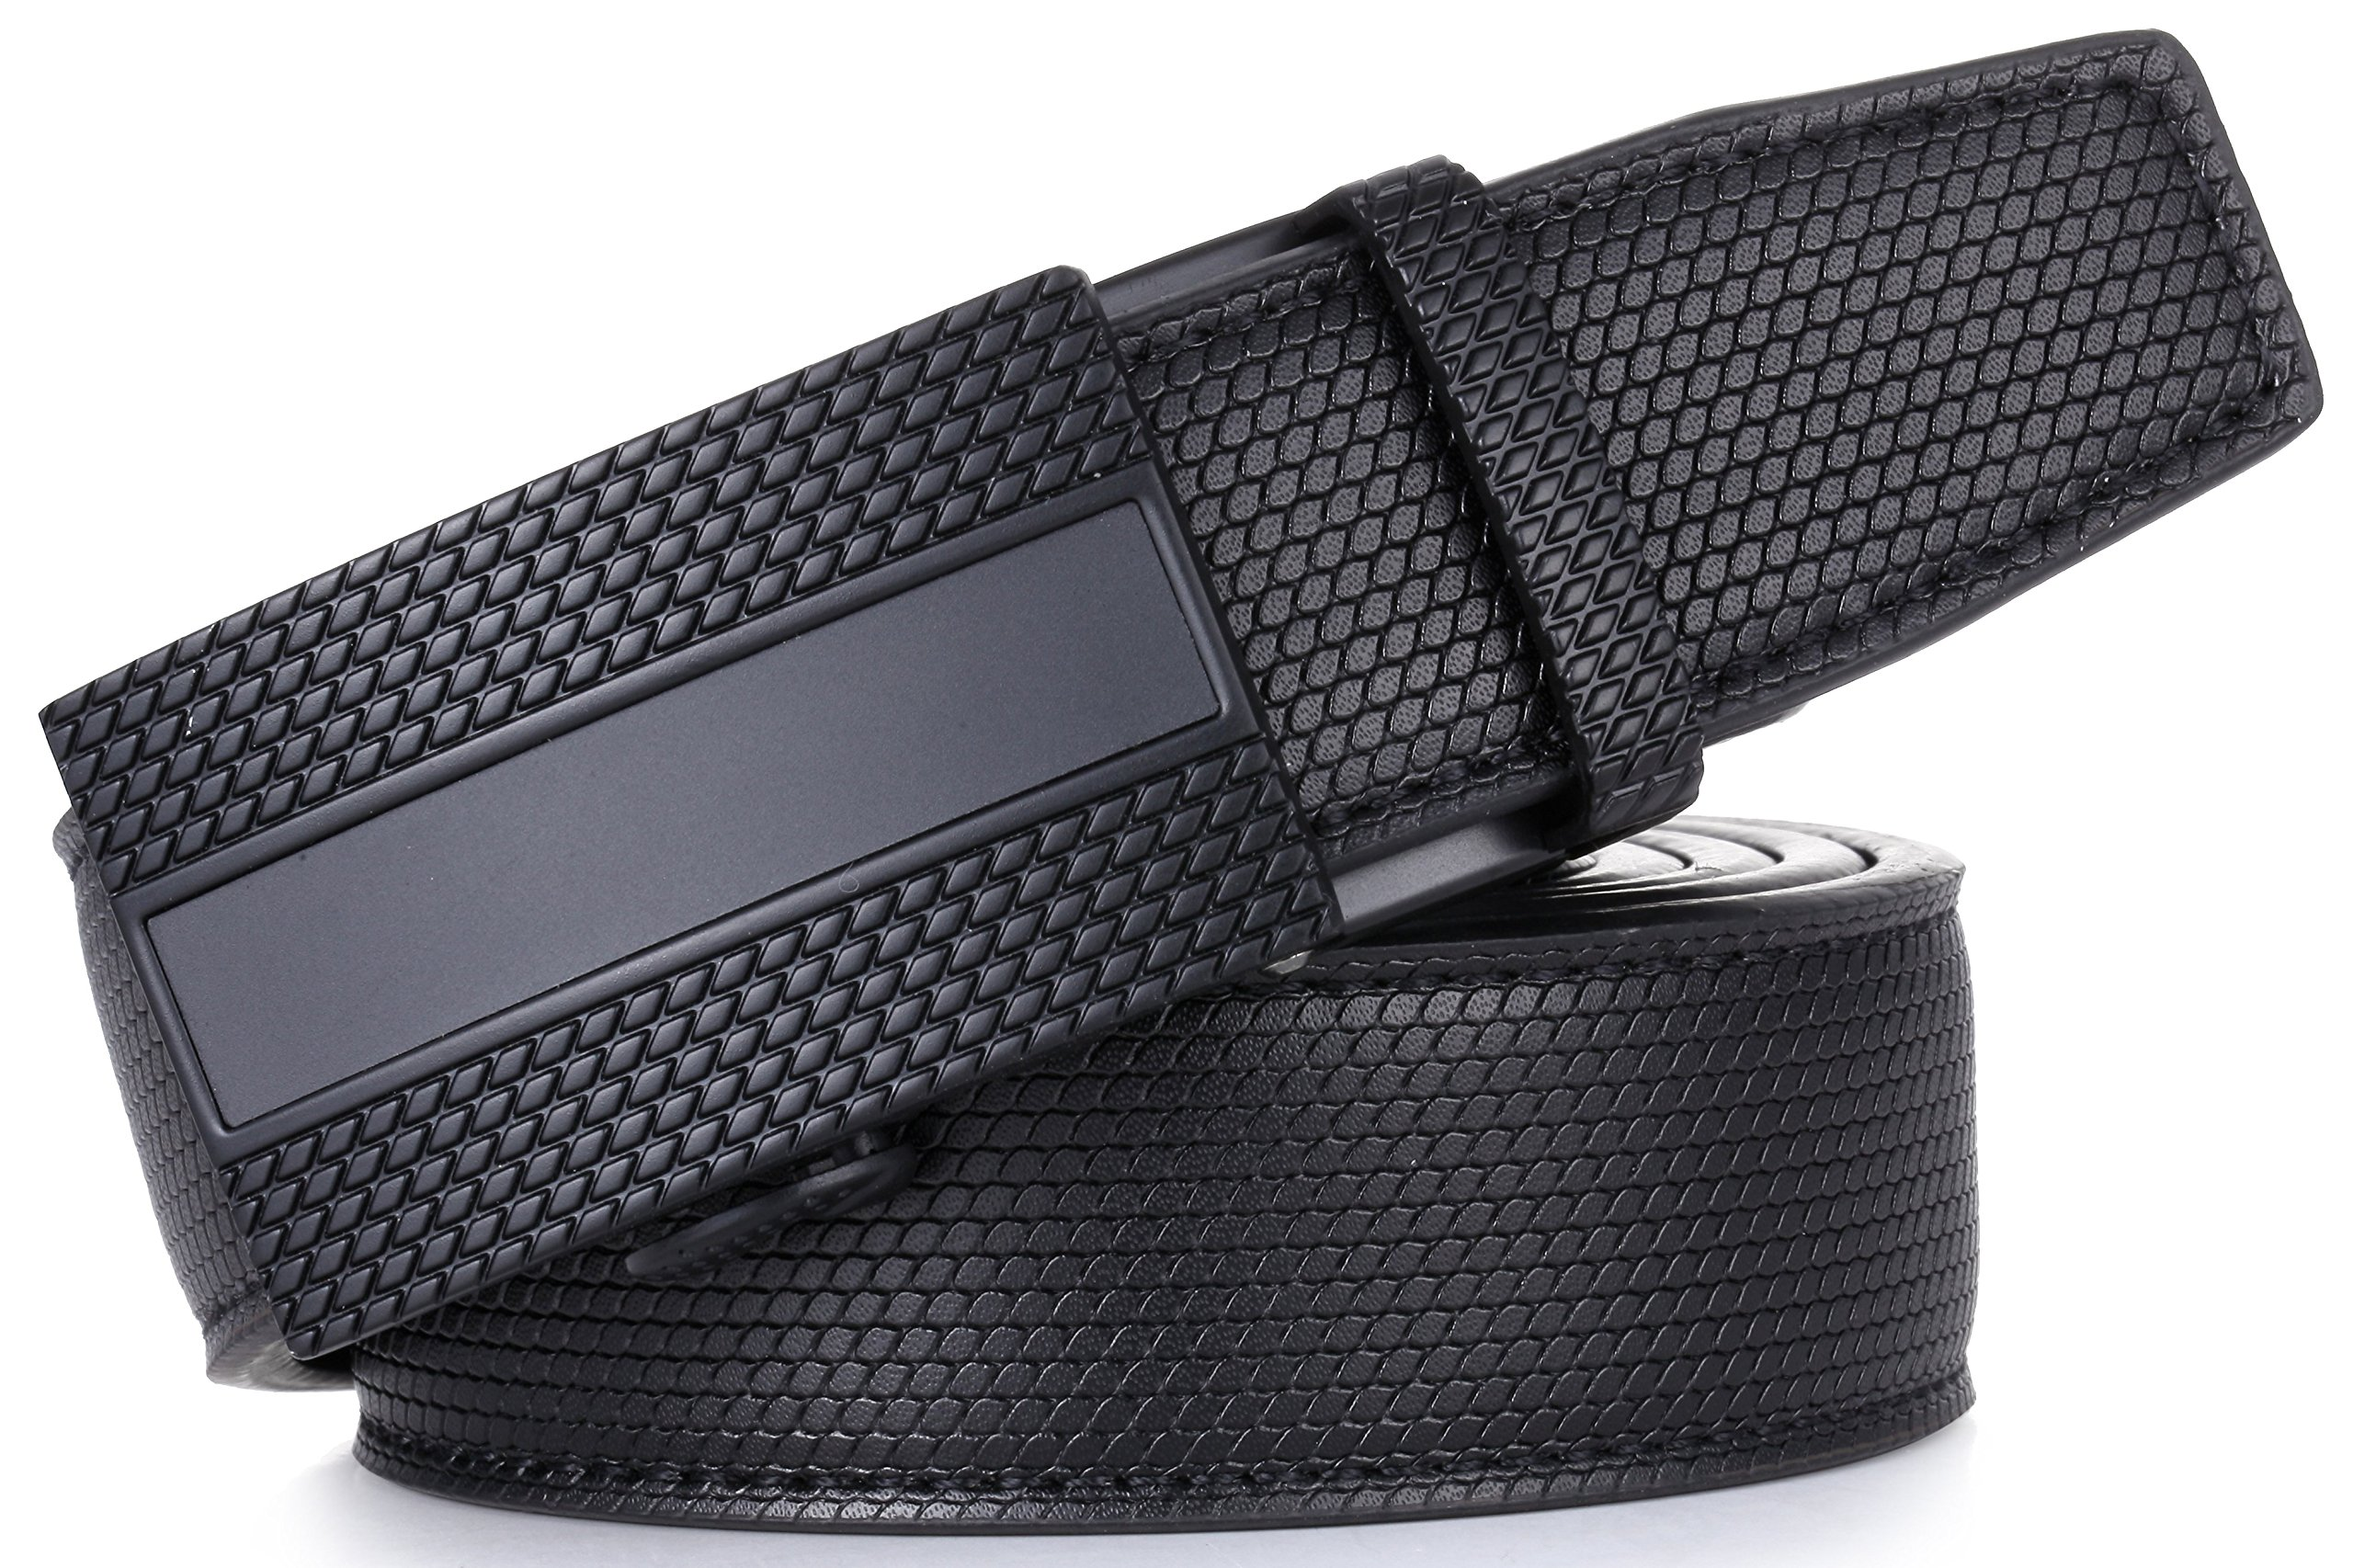 Gallery Seven Mens Leather Ratchet Belt - Adjustable Genuine Leather Dress Belt For Men - Casual Click Belt - In Gift Box - Black Style-1 - Medium Up To Waist 44'' by Gallery Seven (Image #6)